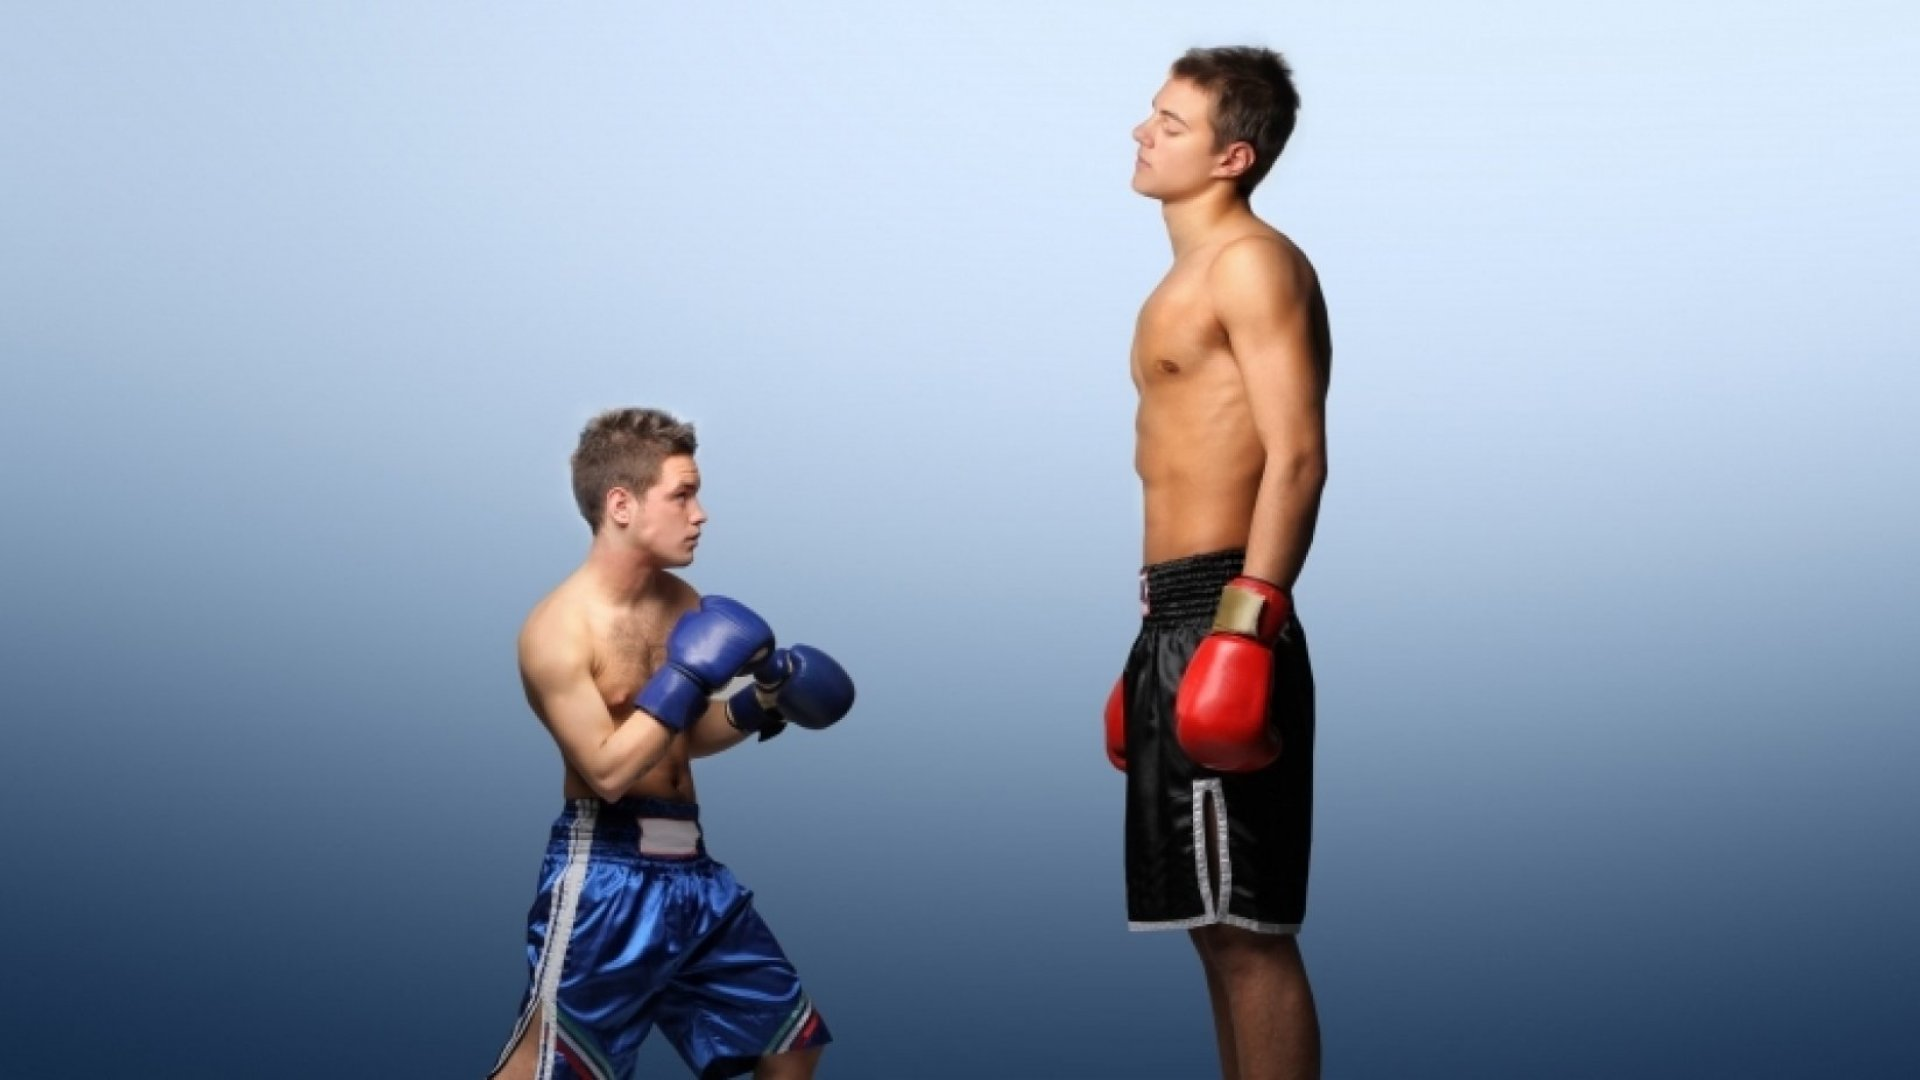 3 Things People Get Wrong About David vs. Goliath